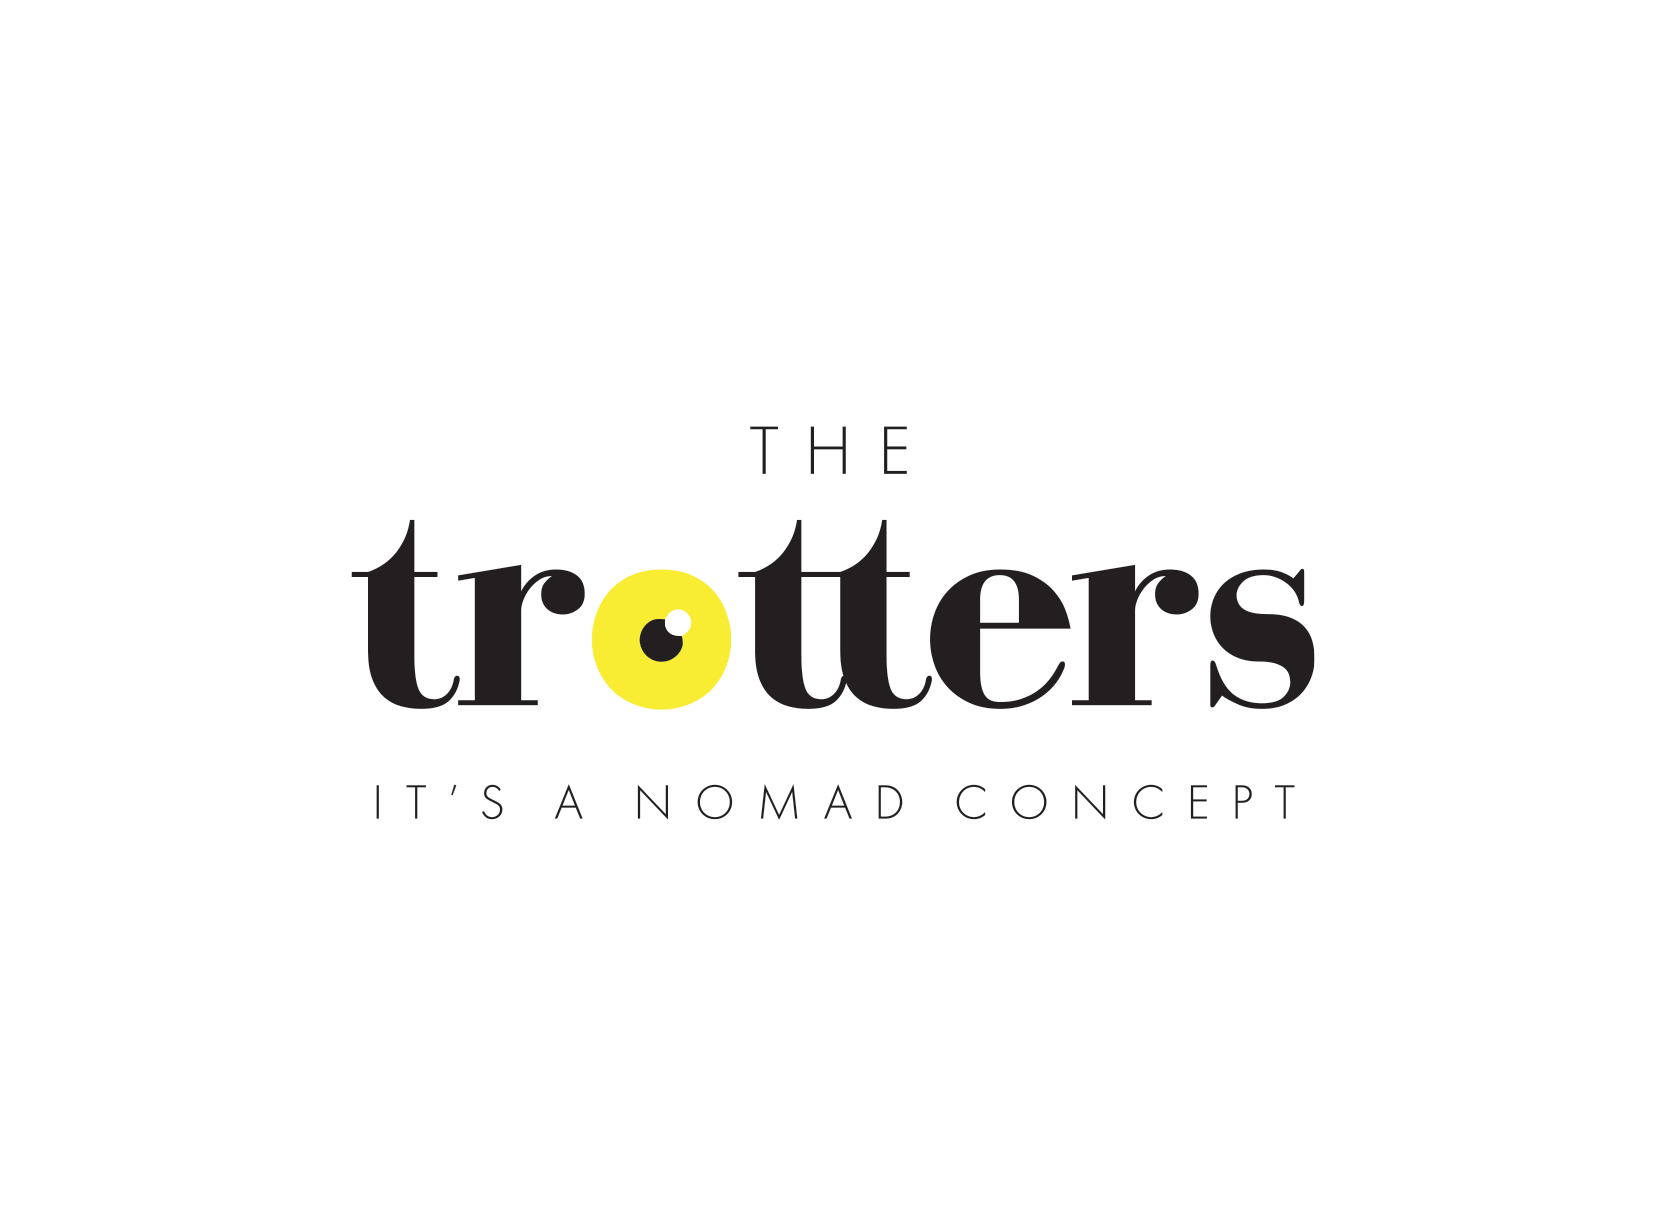 BS_Projet-TheTrotters2.png